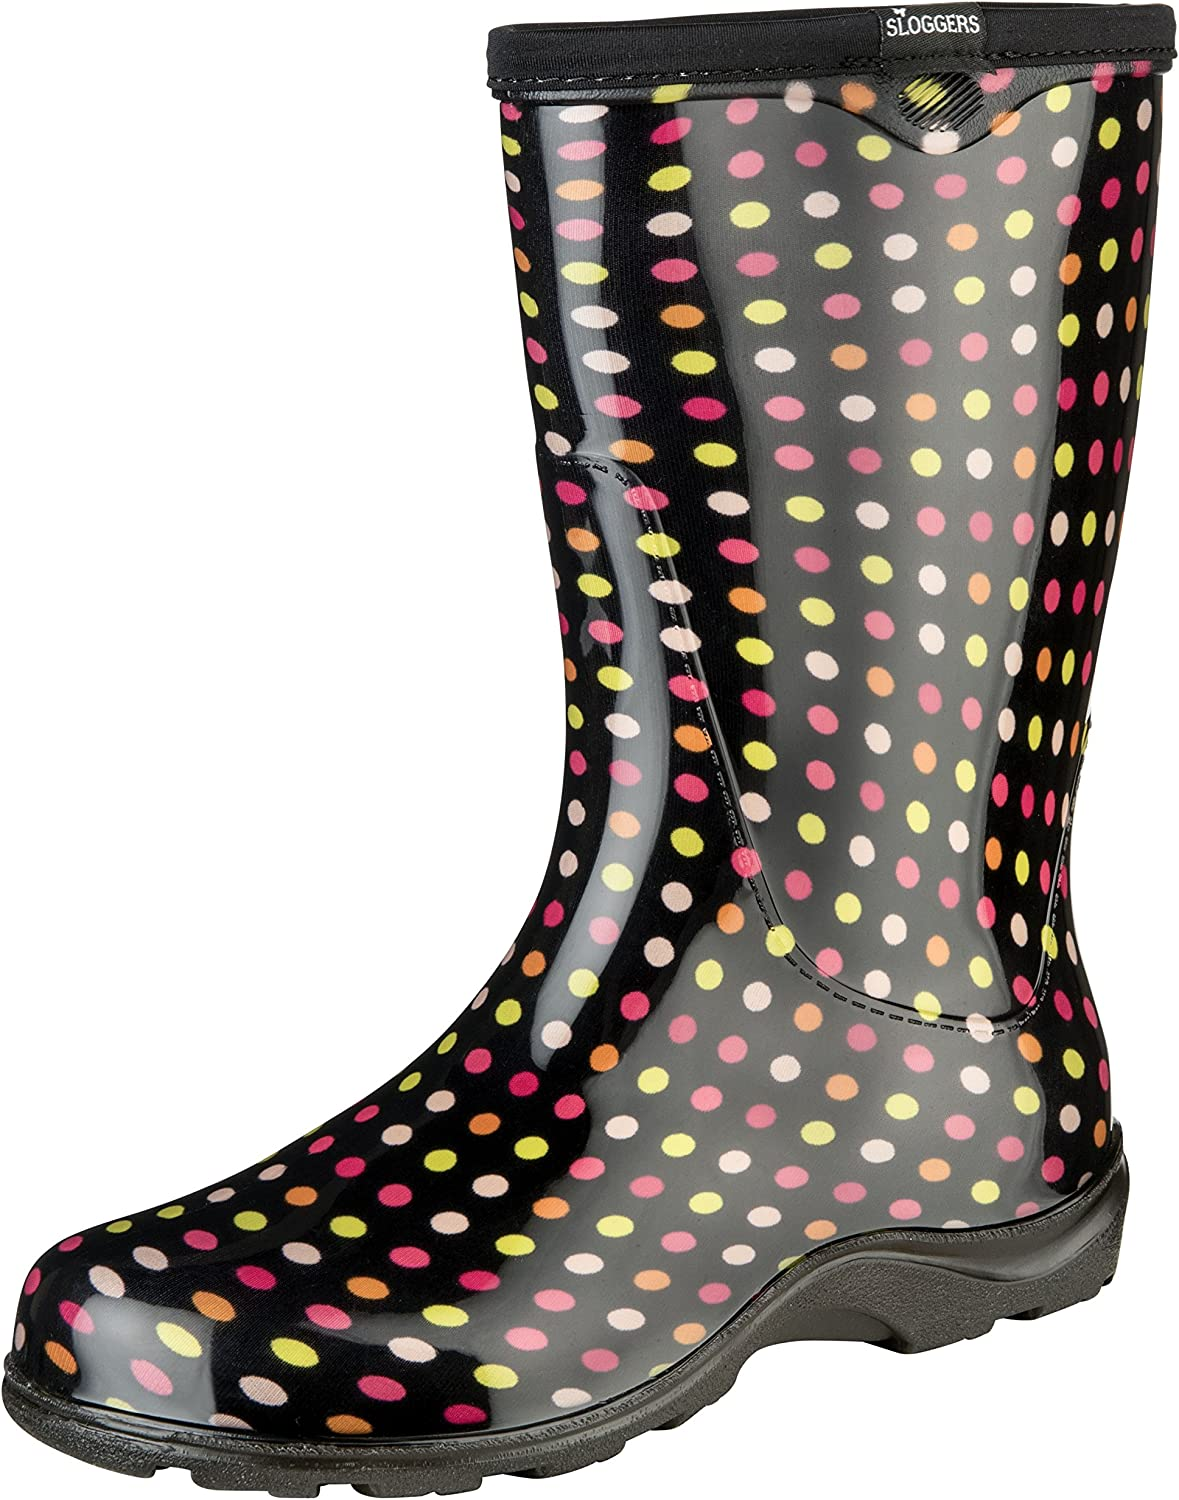 Sloggers Women/'S Tall Rain And Garden Boots Black Floral